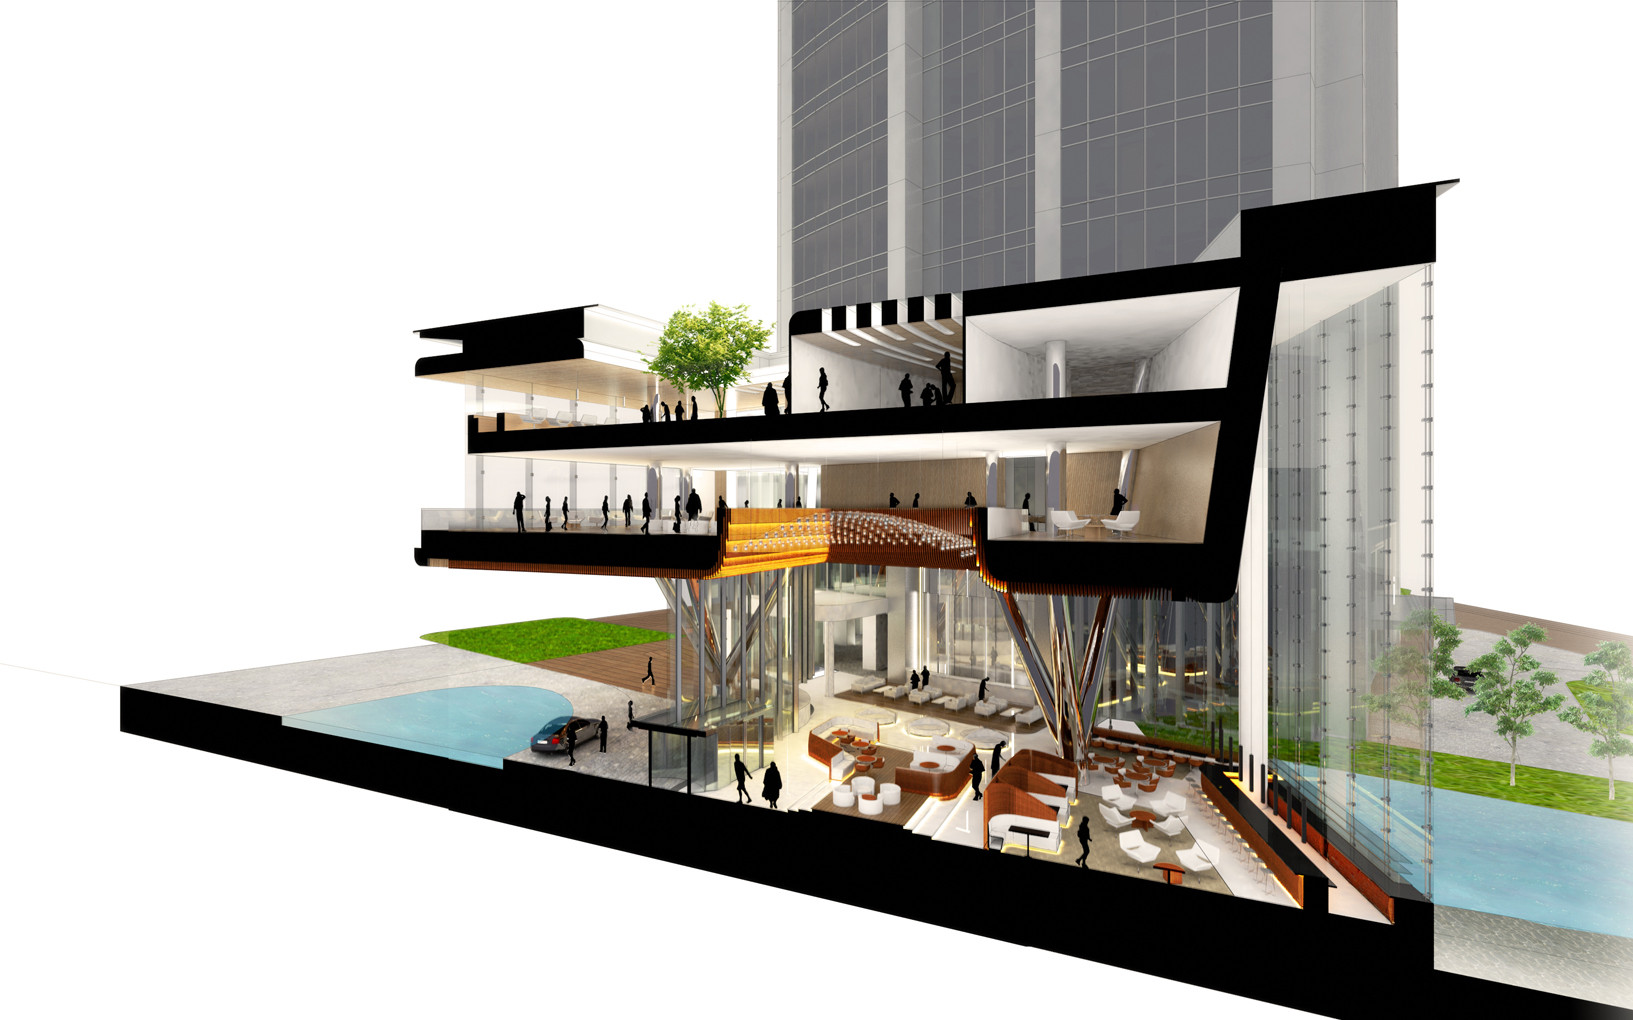 Gallery of woods bagot reveals design for wenling sheraton for Hotel design ce